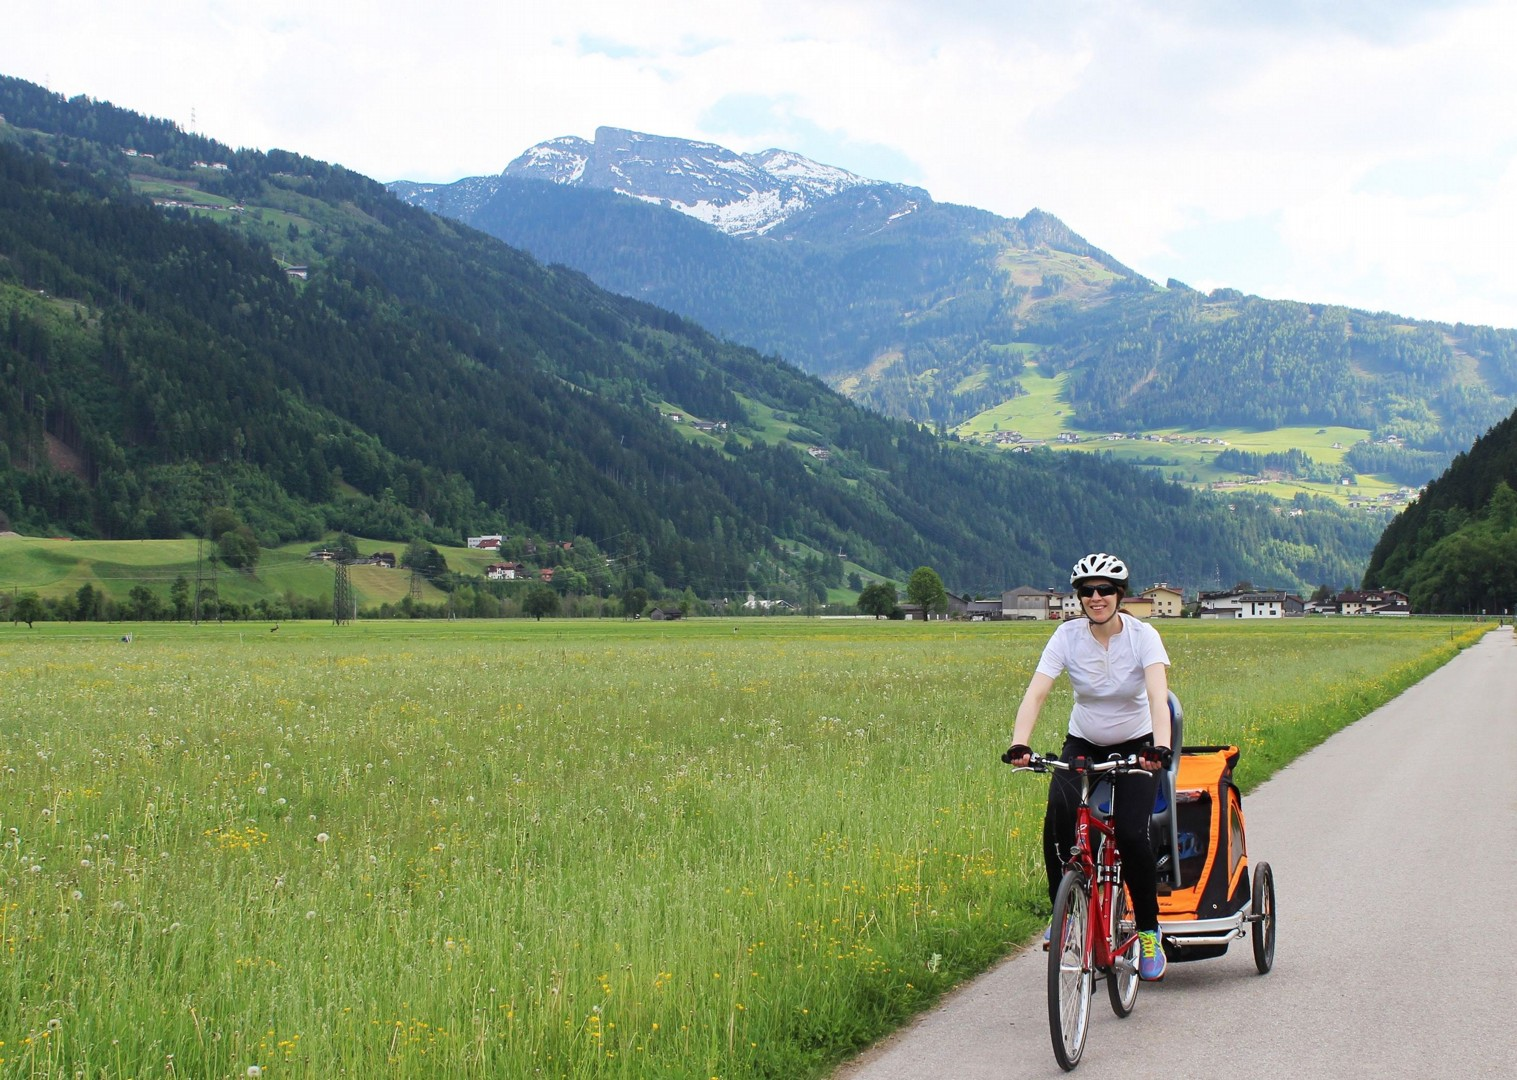 tyrolean-valleys-austria-self-guided-cycling-holiday.jpg - Austria - Tyrolean Valleys - Family Cycling